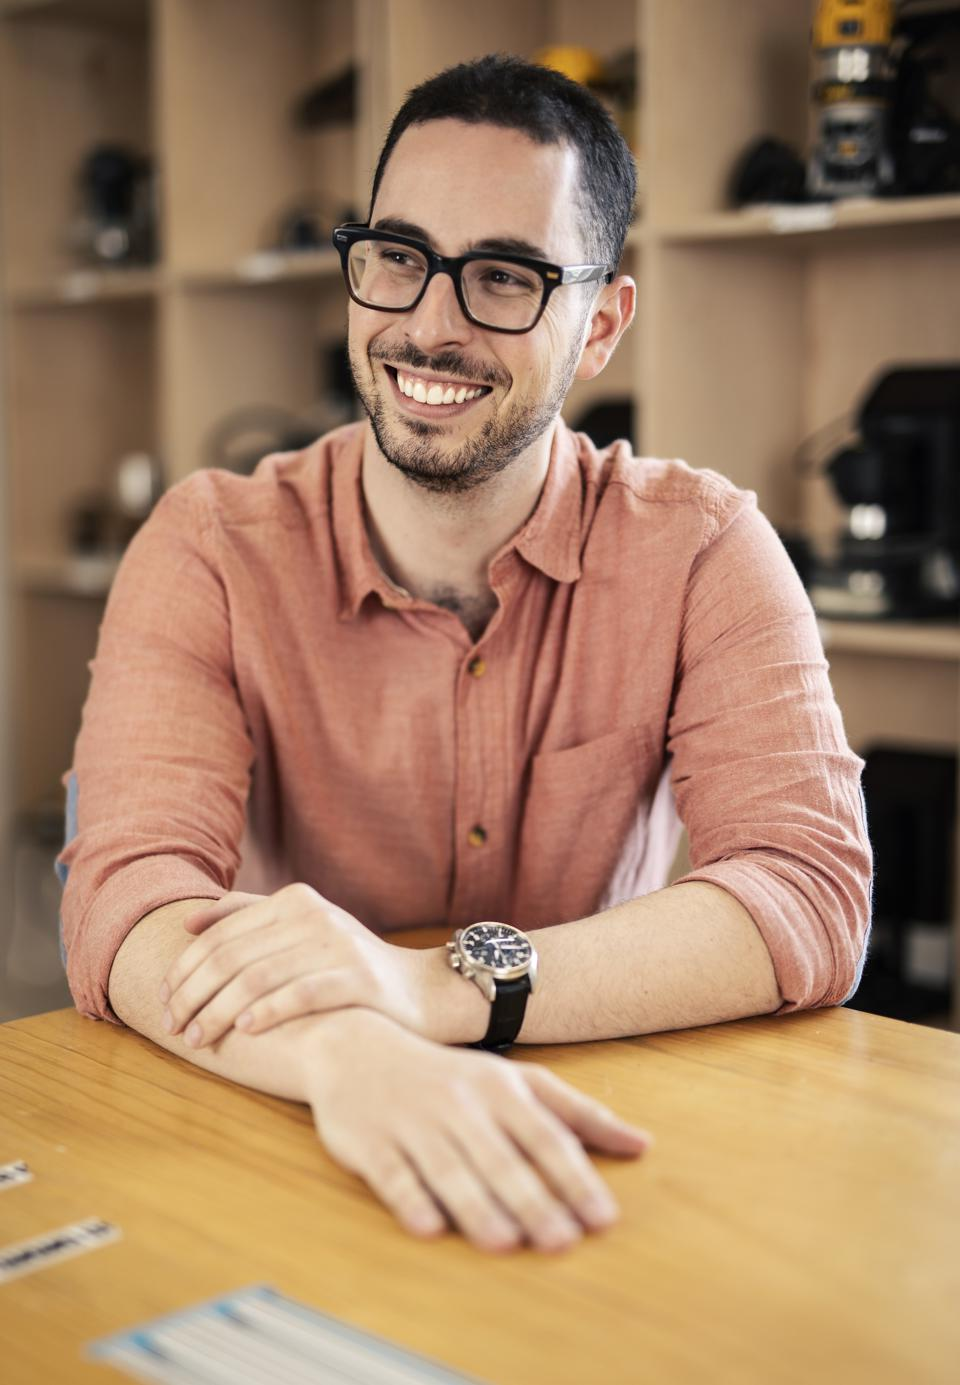 Blum is just getting started. He recently won Forbes' 30 Under 30 list honors as a top innovator in the Manufacturing & Industry category.